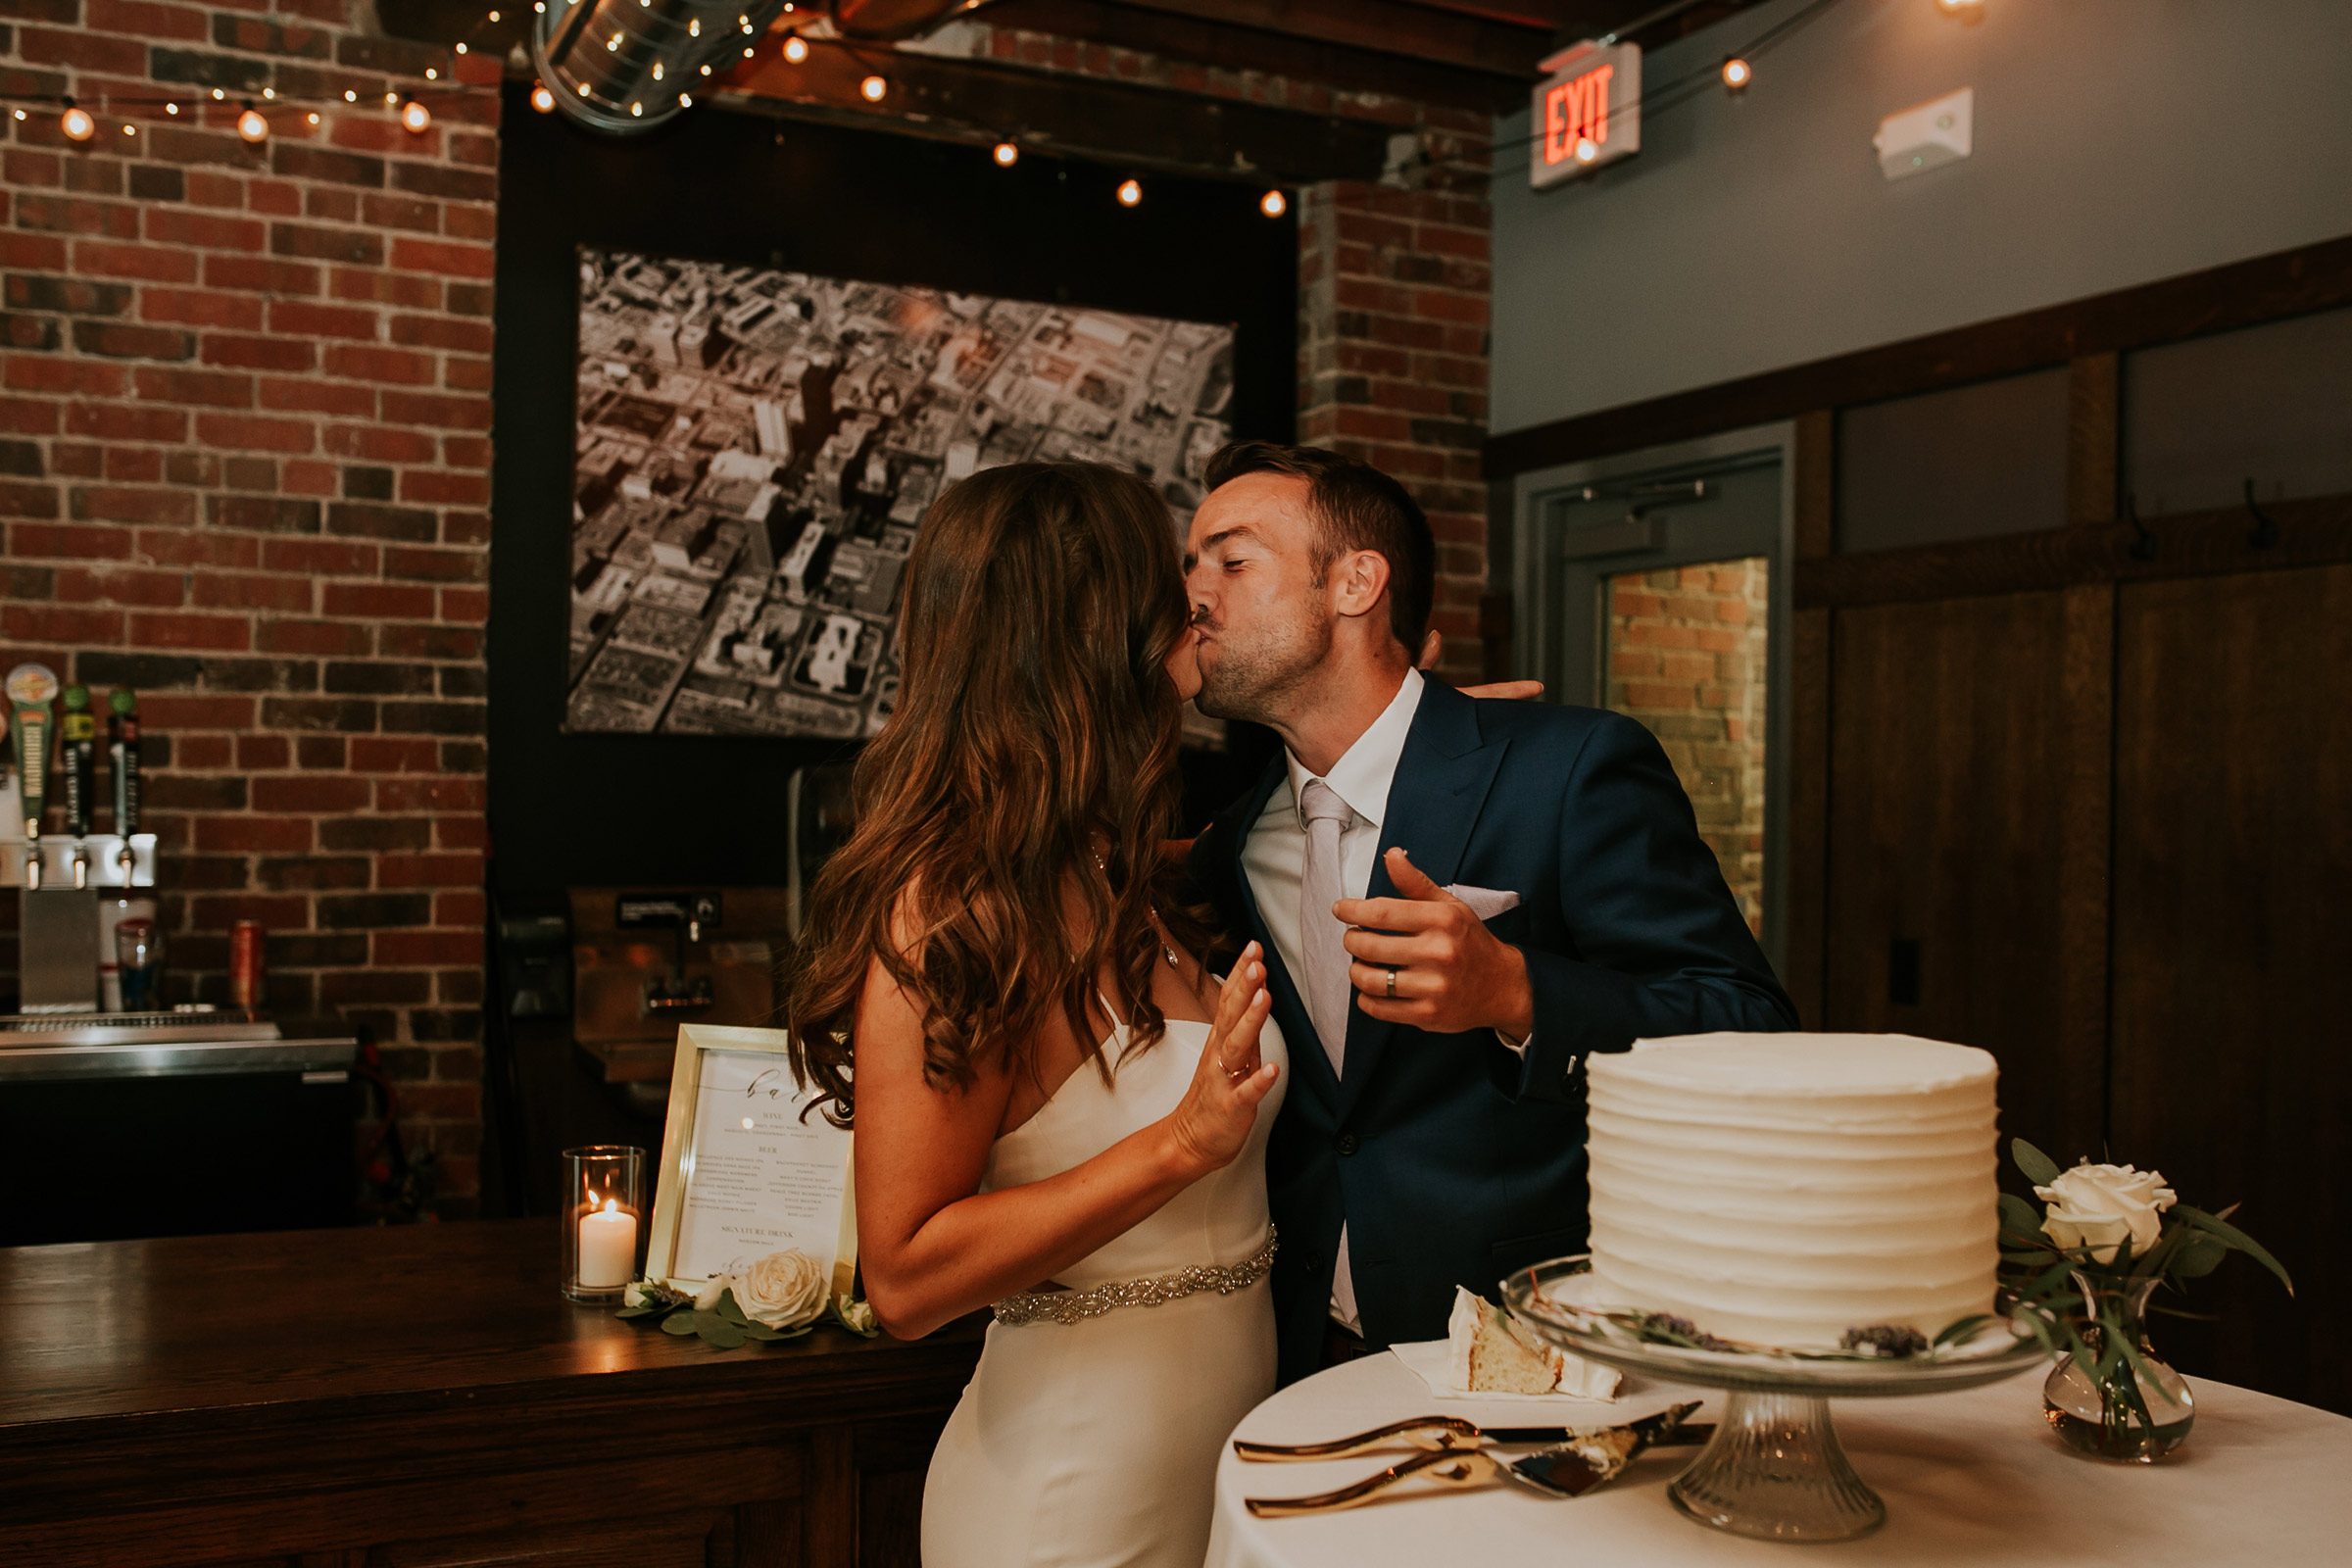 mr-mrs-hull-couple-kissing-cake-cutting-taproom-desmoines-iowa-raelyn-ramey-photography-554.jpg